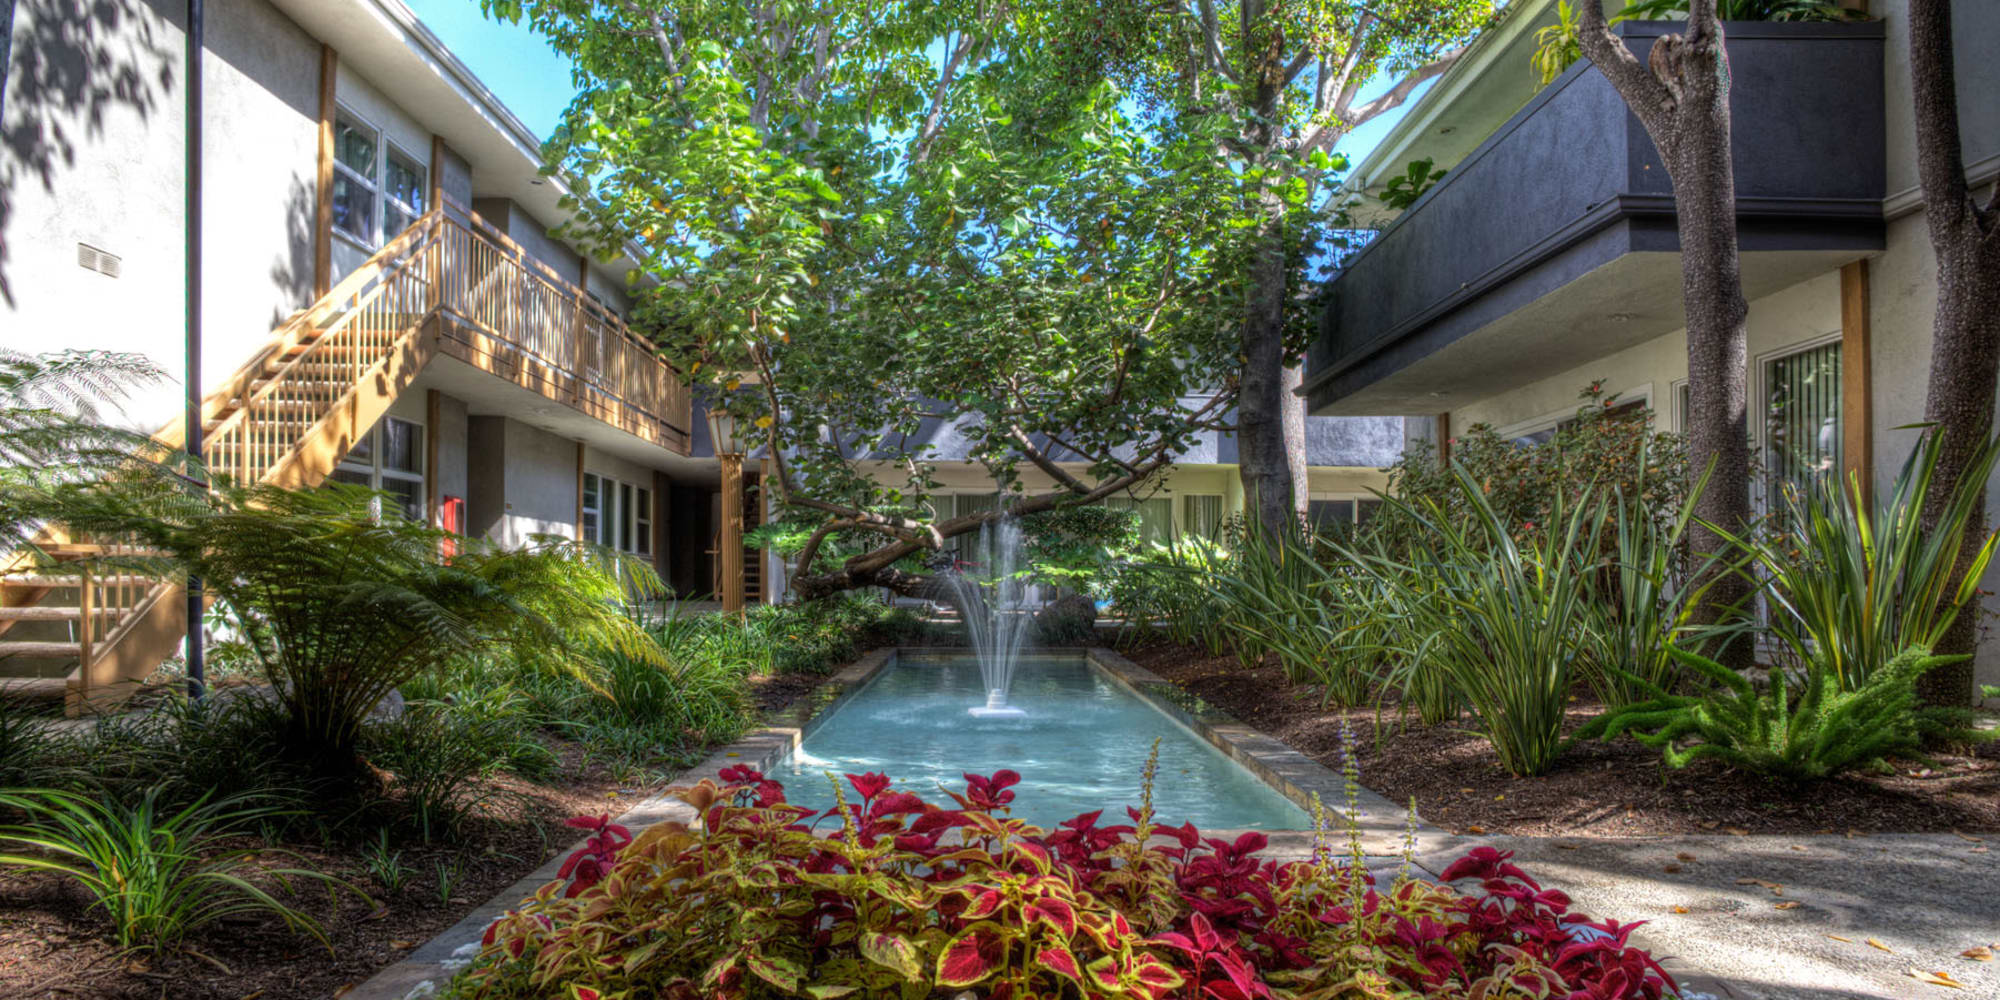 Fountain in a water feature between resident buildings at West Park Village in Los Angeles, California